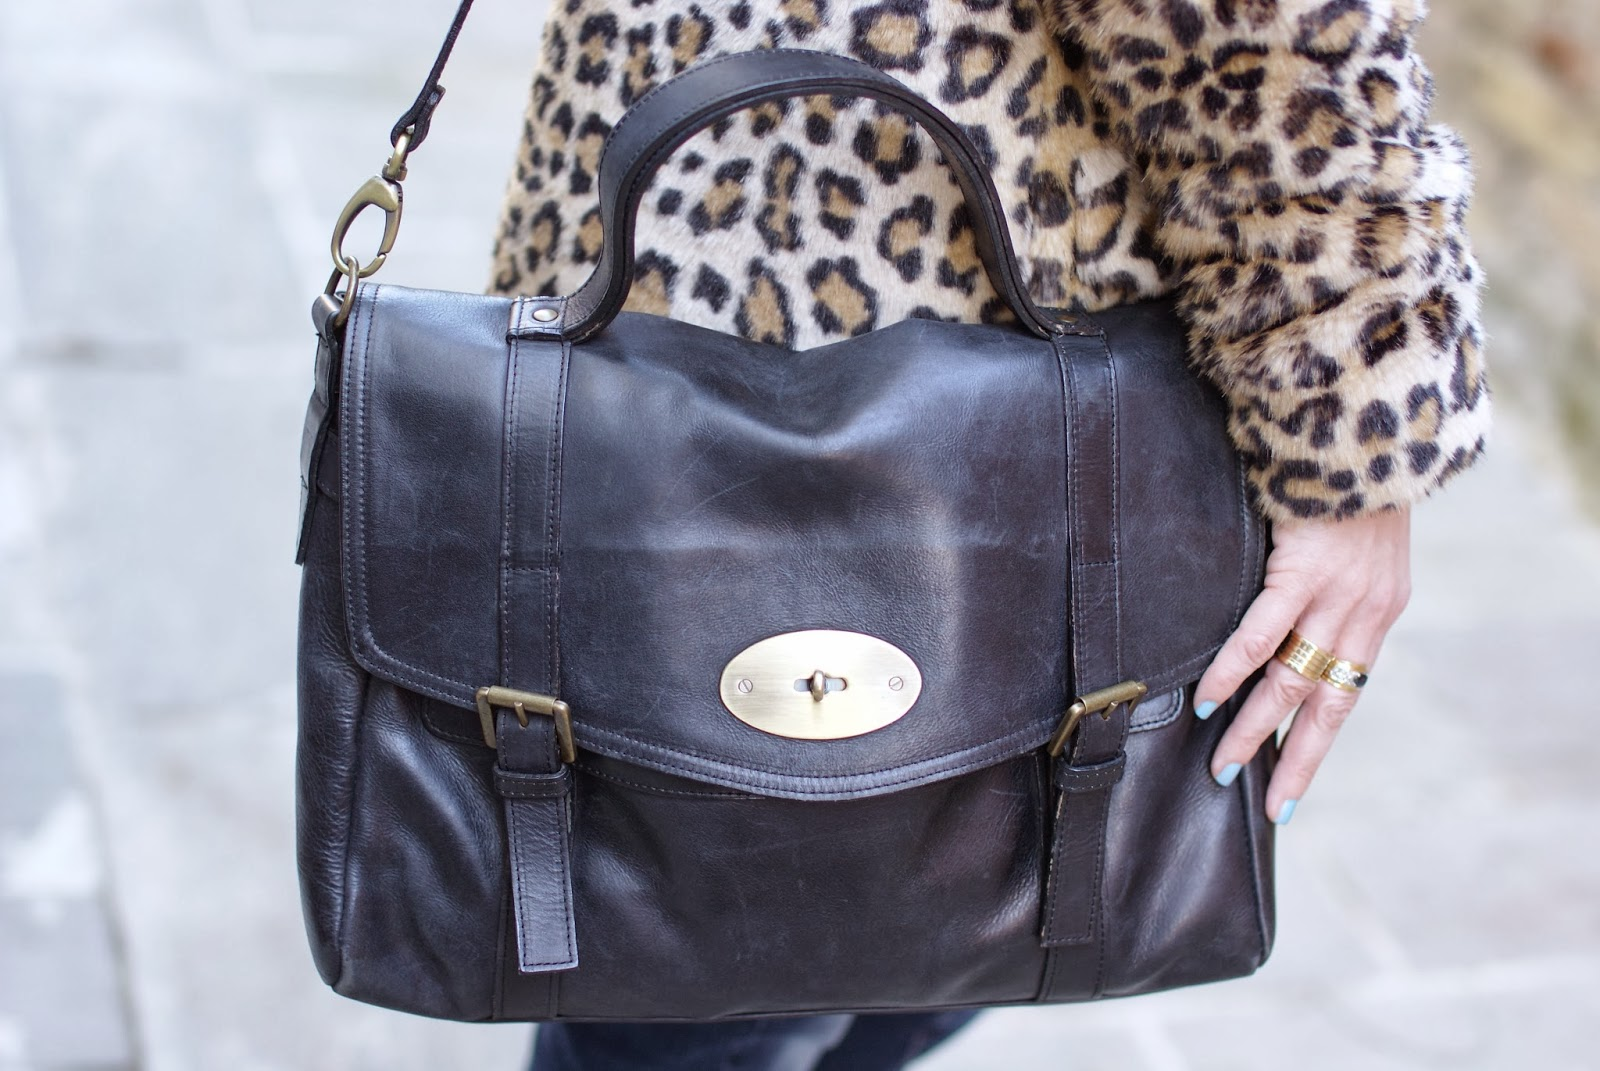 mulberry alexa lookalike, satchel bag, Fashion and Cookies, fashion blogger